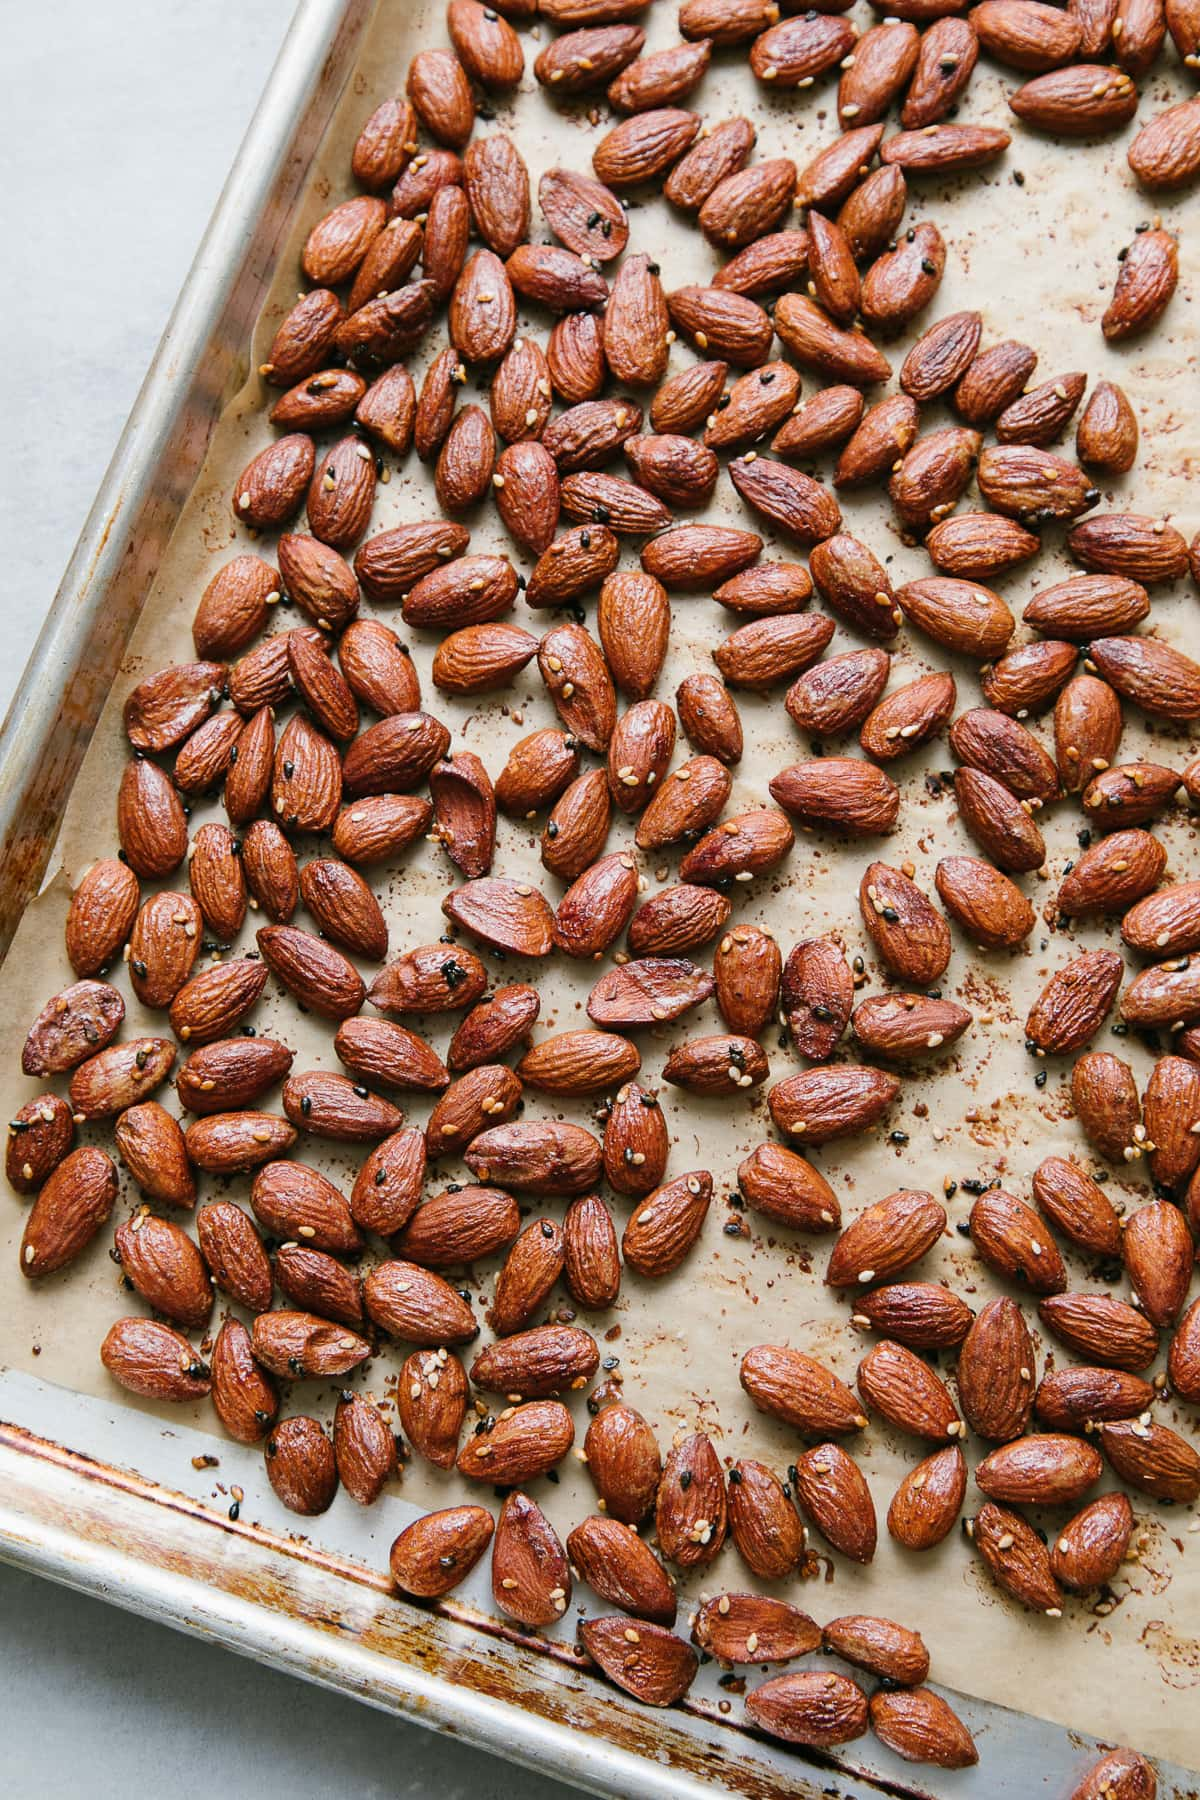 top down view of freshly made mirin maple roasted almonds on a baking sheet.